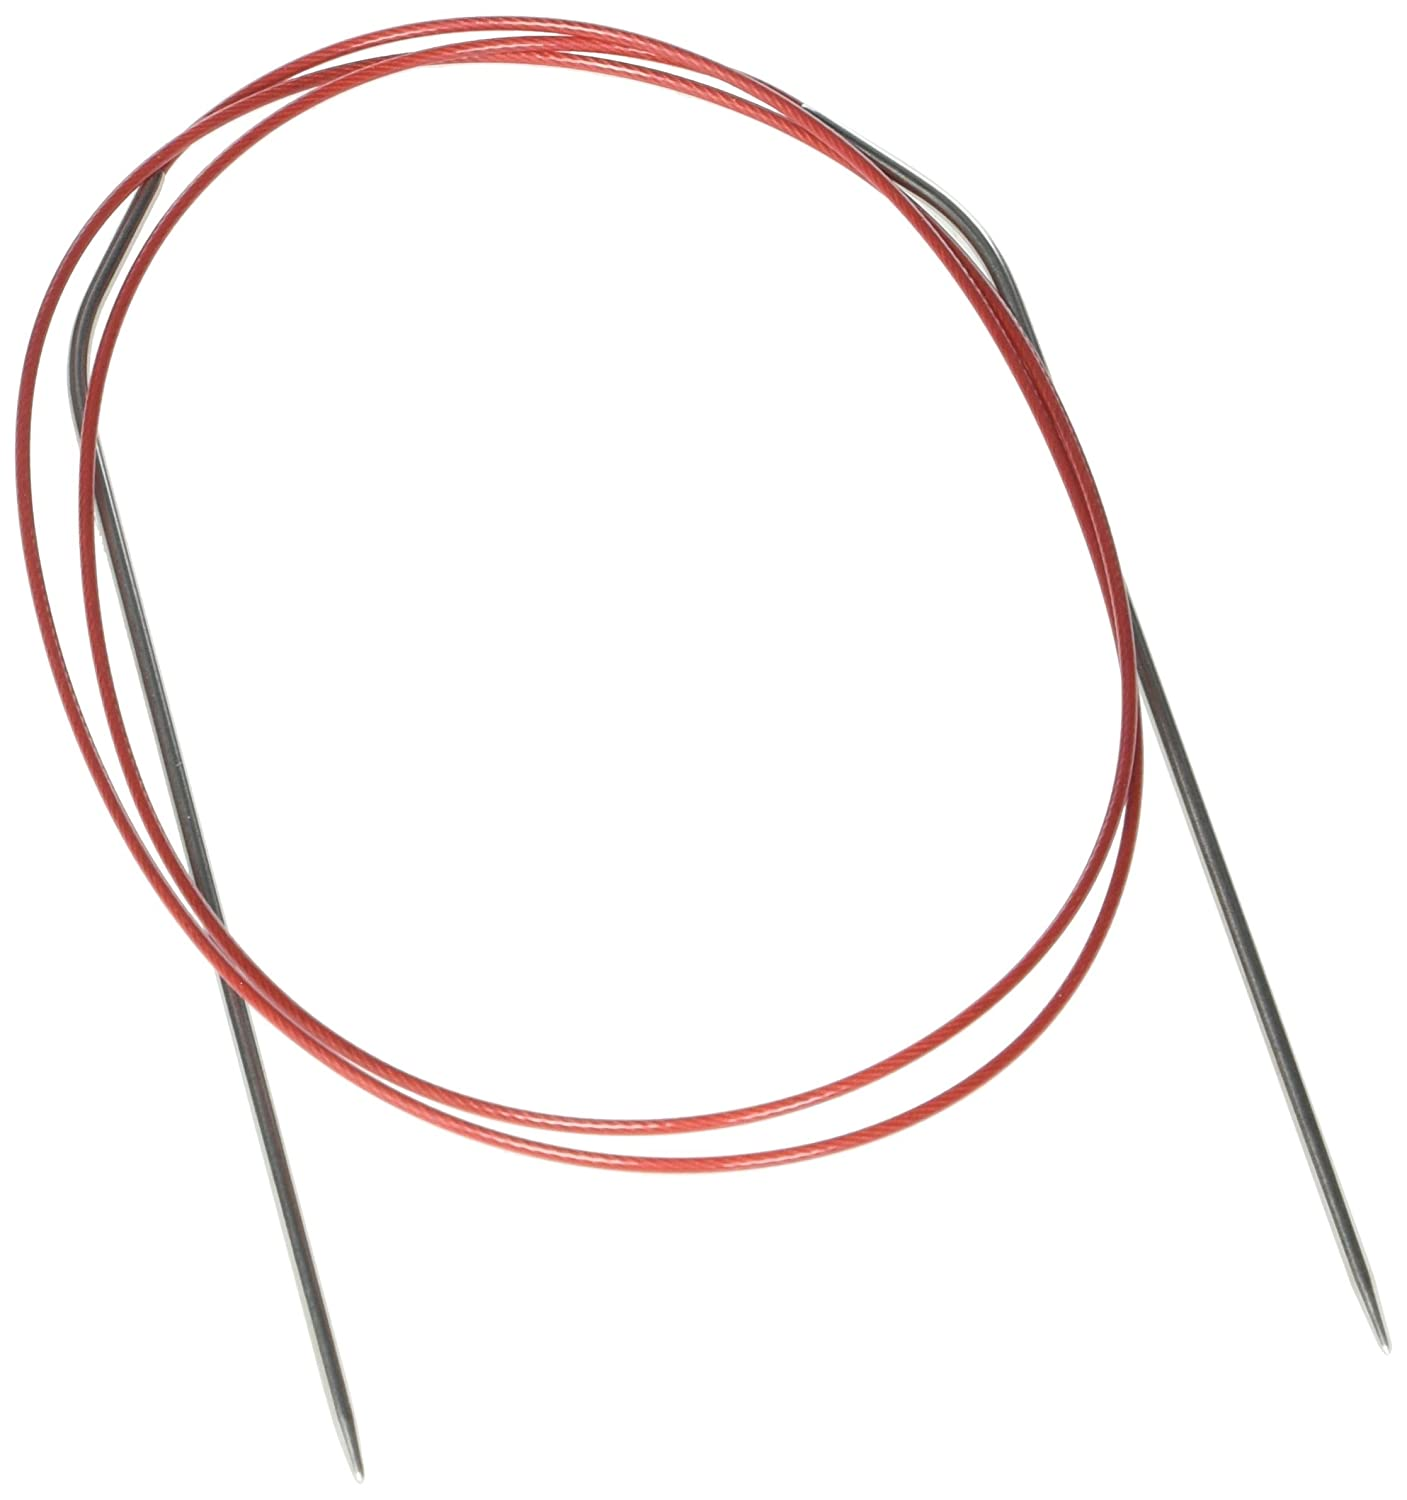 ChiaoGoo Red Lace Circular 40-inch (100cm) Stainless Steel Knitting Needle; Size US 0 (2mm) 7040-0 Westing Bridge LLC. BCAC19203